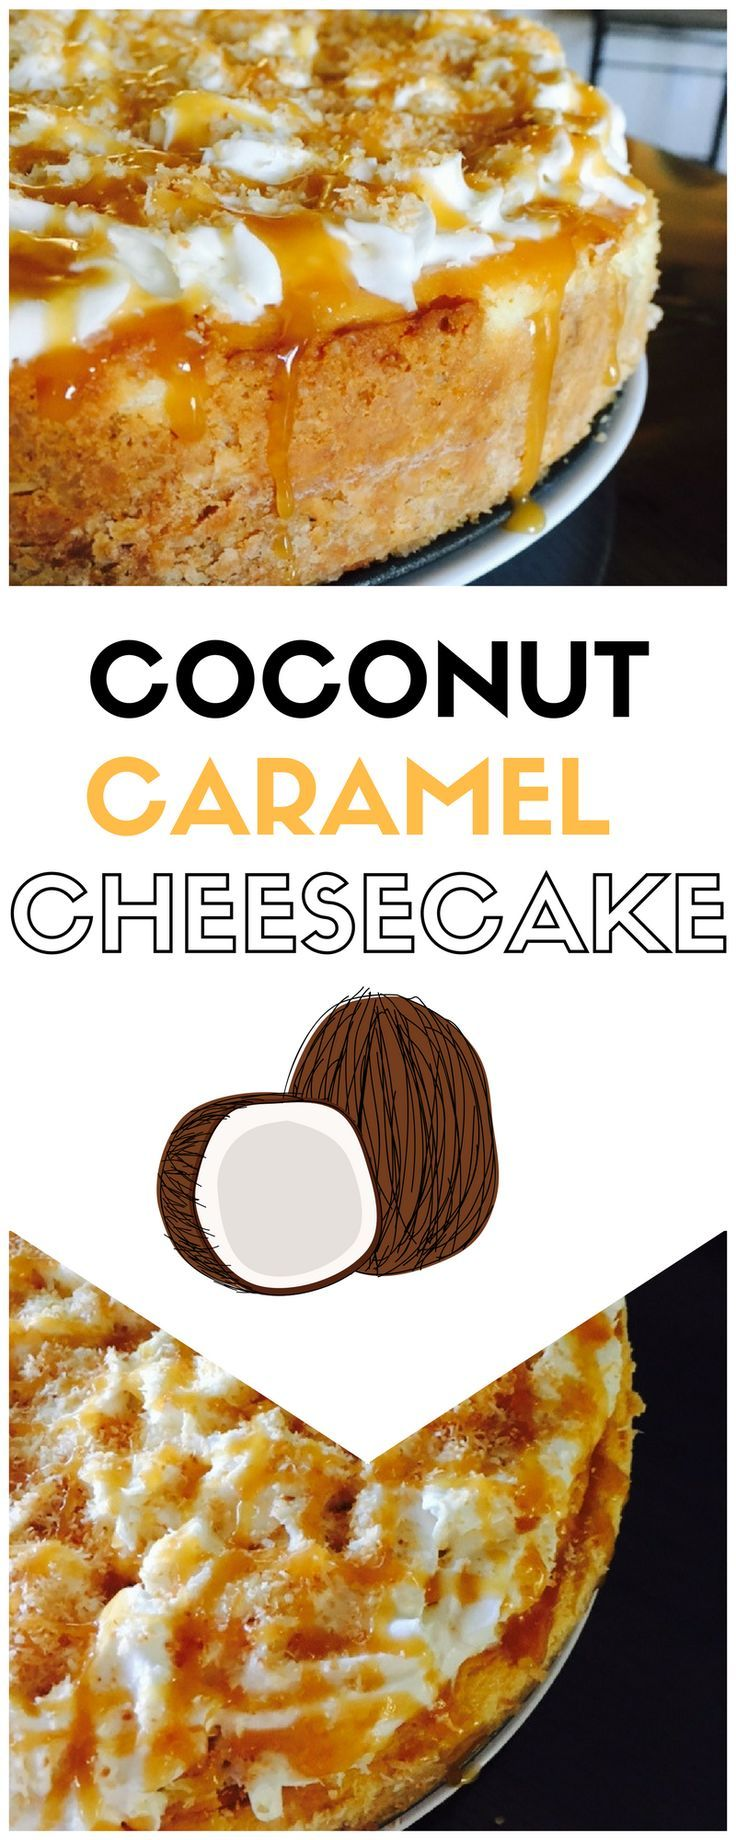 Smooth, creamy, & delicious are the words to describe this Caramel Coconut Cheesecake. Impress your family or friends today. #cheesecake #coconut